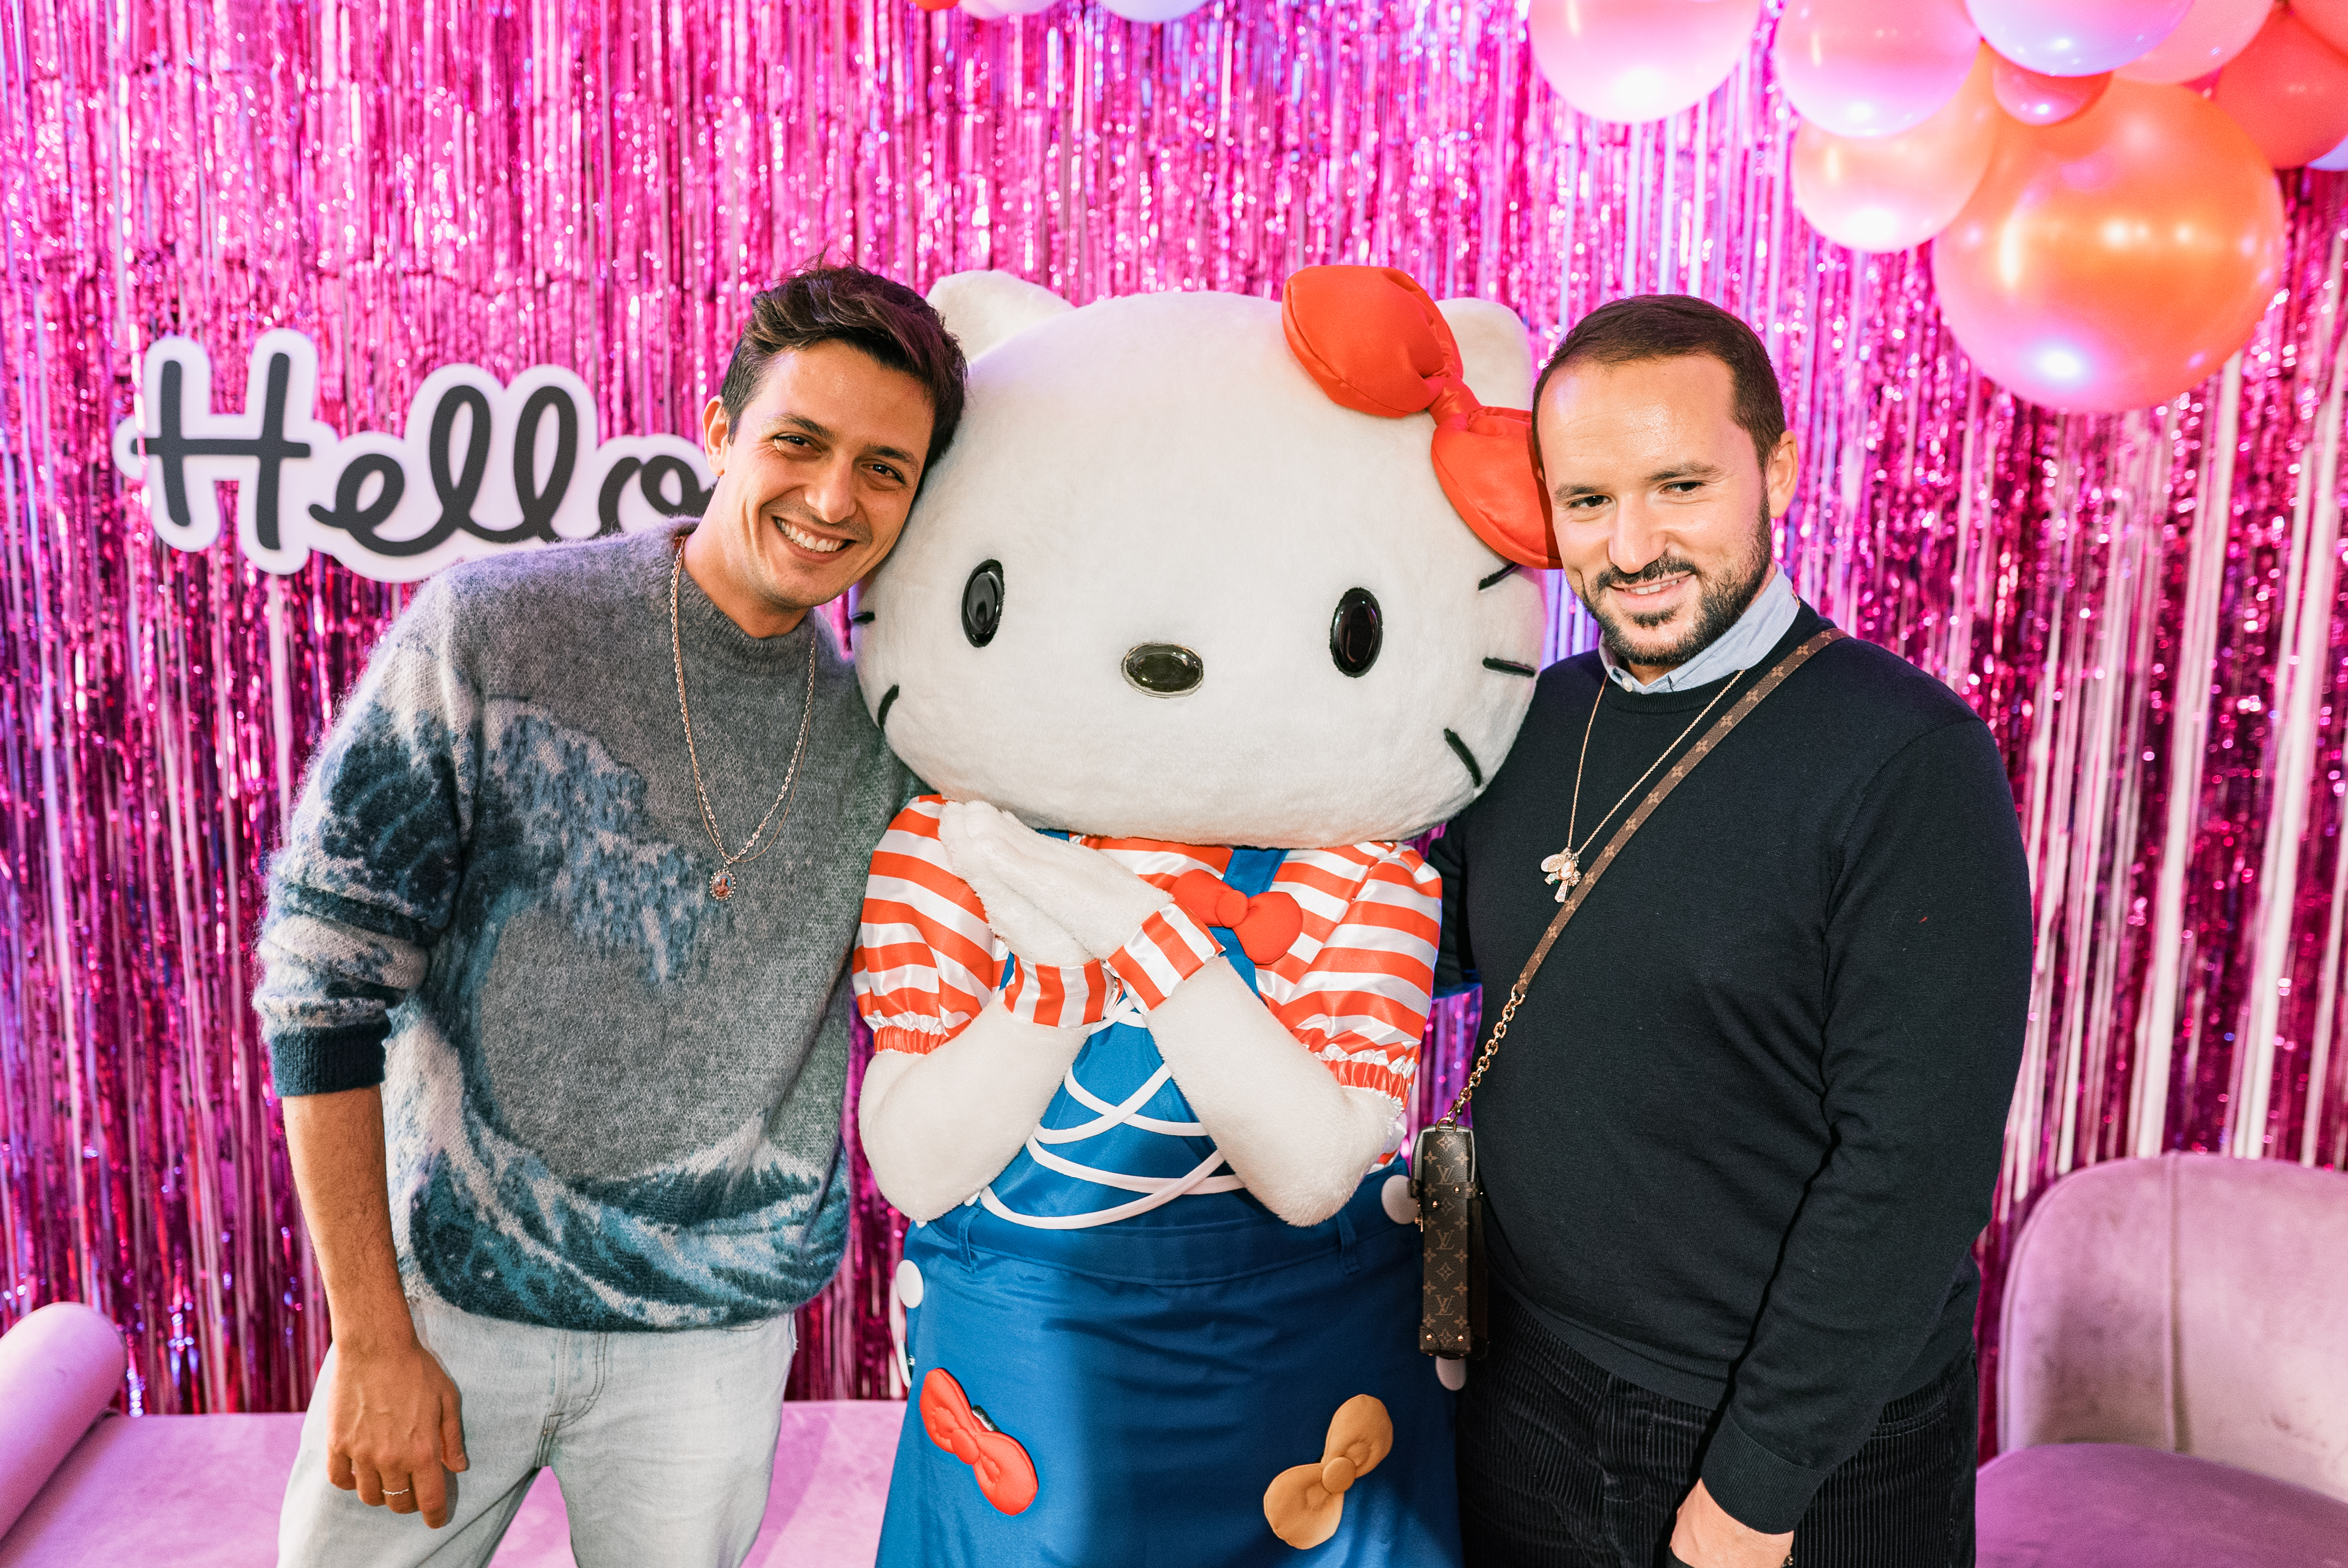 HELLO KITTY 45 TH PARTY_Alessandro Enriquez e Andrea Caravita.jpg